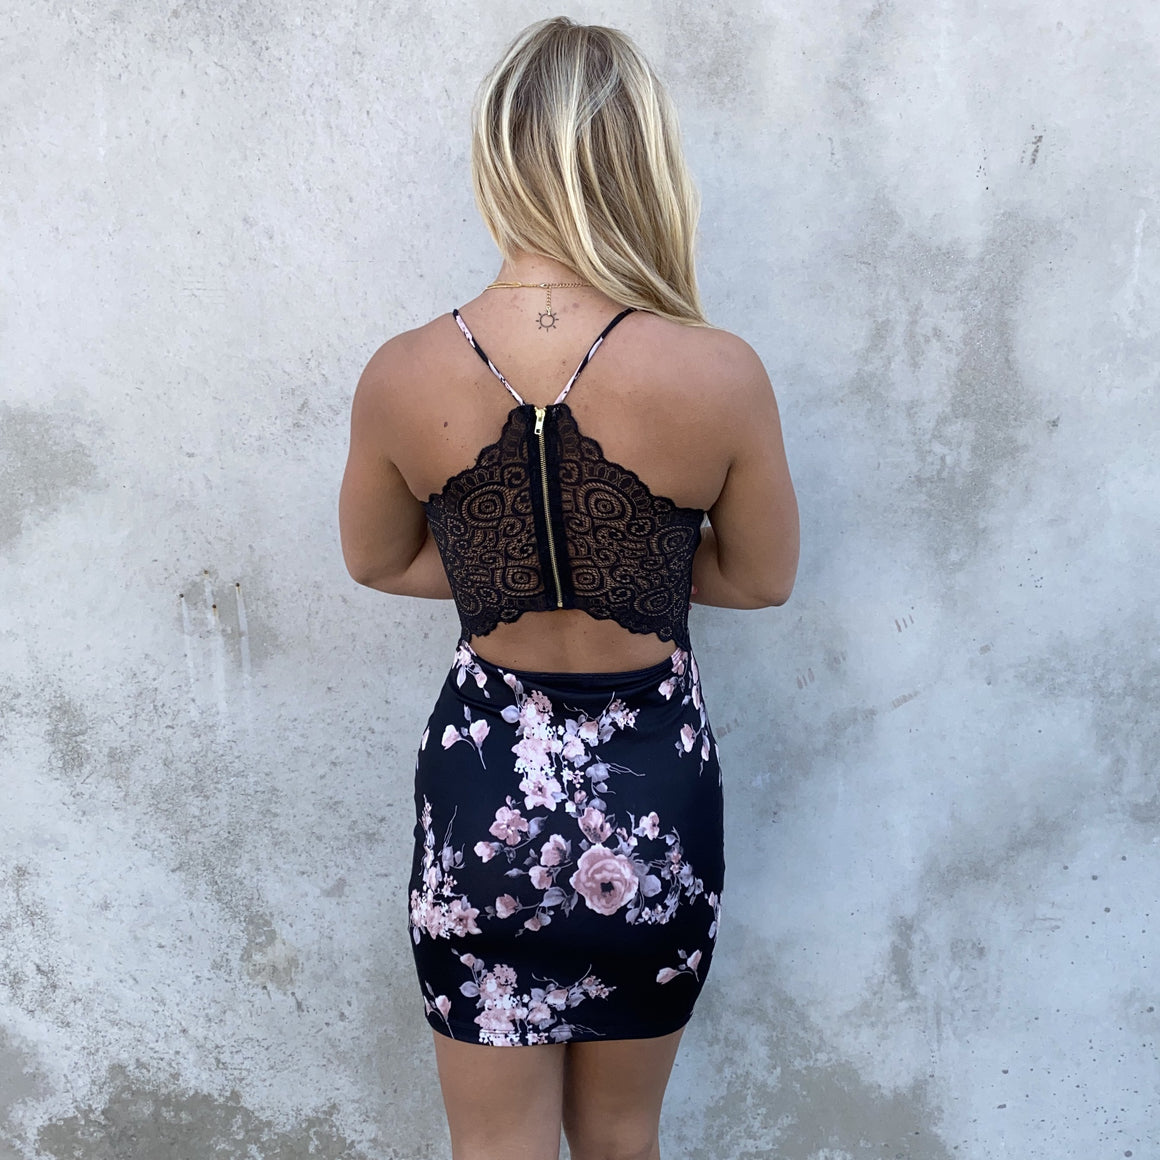 Floral Fantasy Black Bodycon Dress - Dainty Hooligan